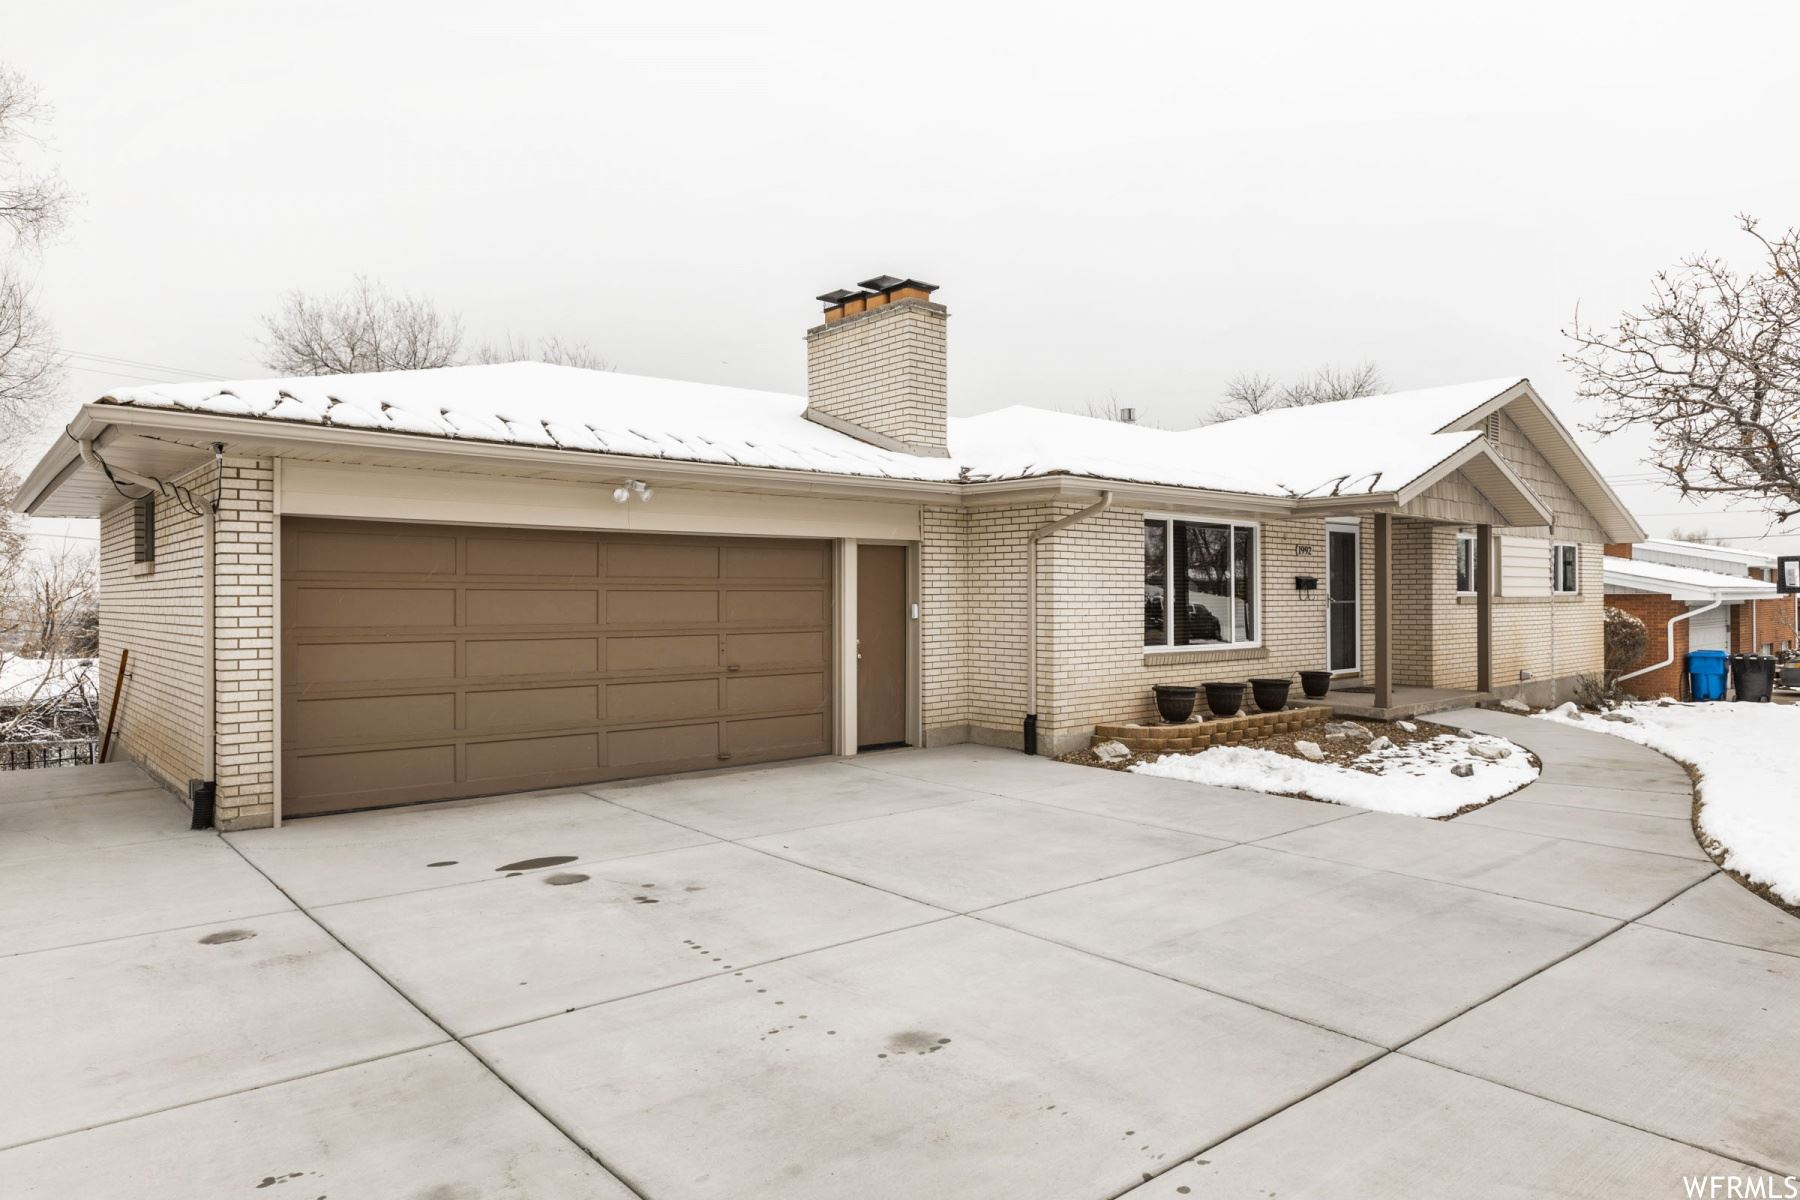 Photo of 1992 S 400 E, Bountiful, UT 84010 (MLS # 1725403)